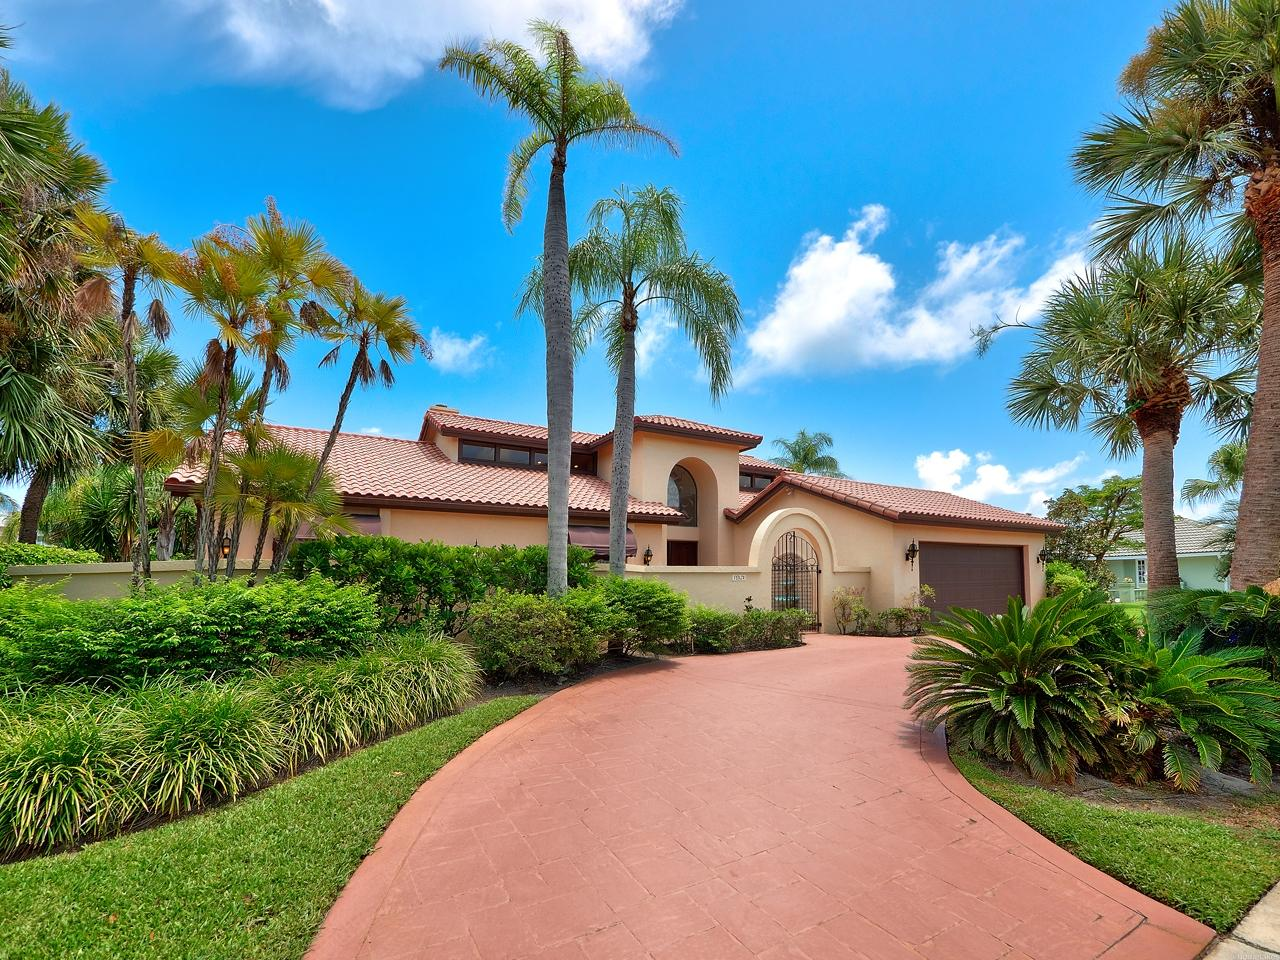 132 Pegasus Drive, Jupiter, Florida 33477, 3 Bedrooms Bedrooms, ,3 BathroomsBathrooms,F,Single family,Pegasus,RX-10512859